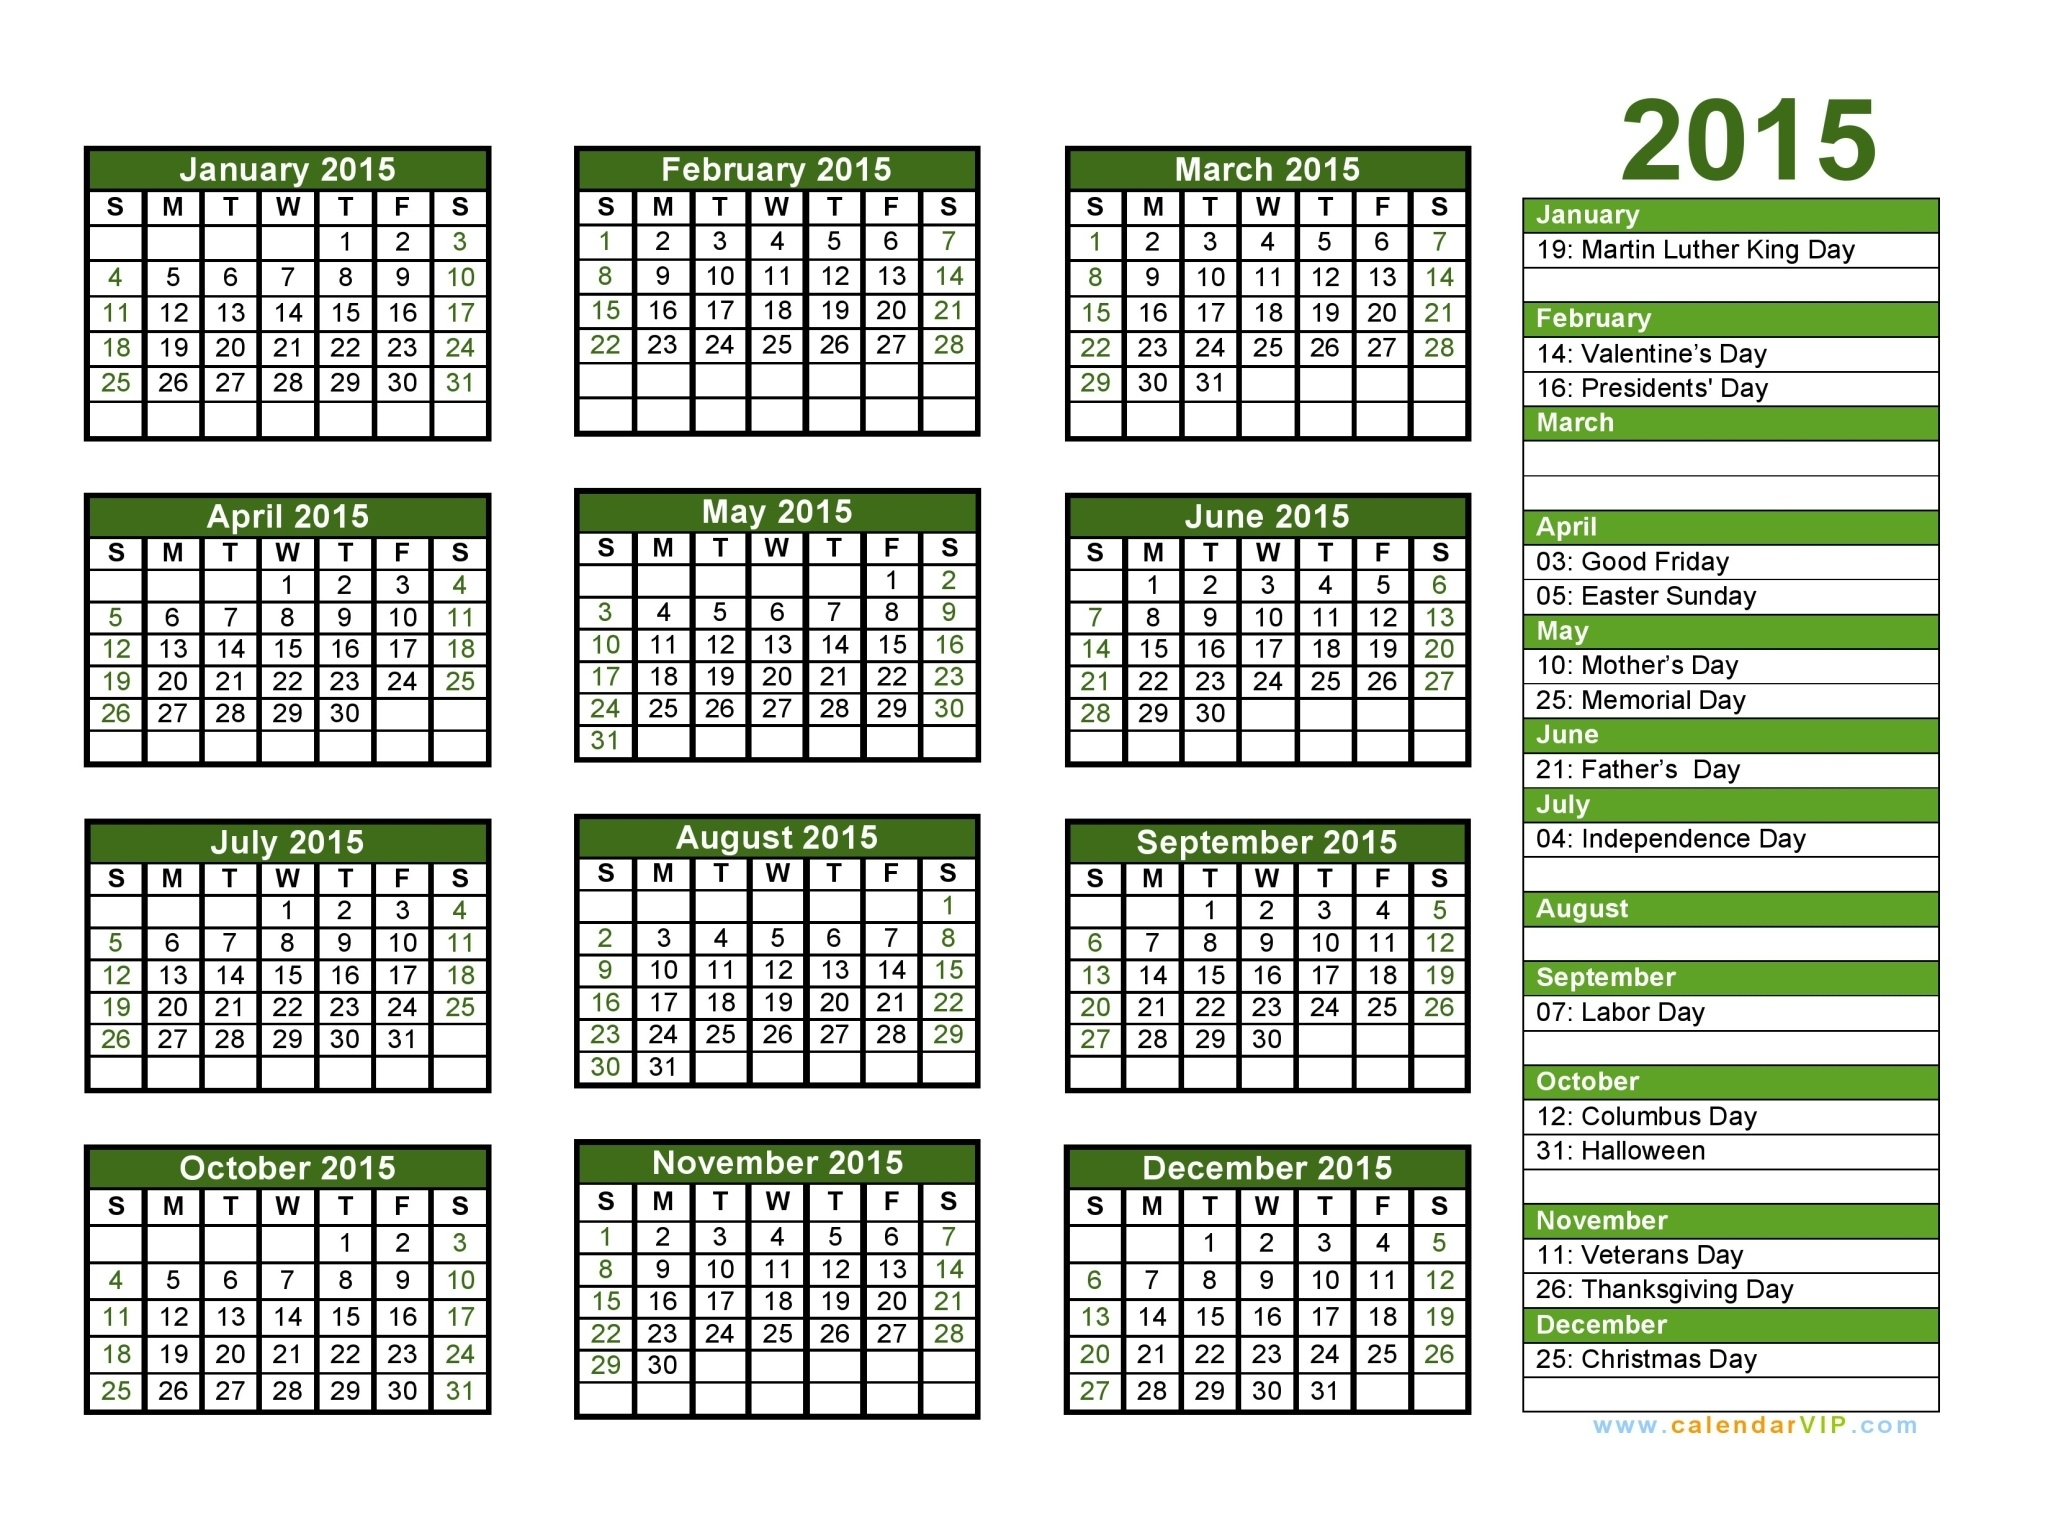 Calendar 2015 With Holidays Printable - Yeniscale.co  Printable 2014 Calendar With Canadian Holidays